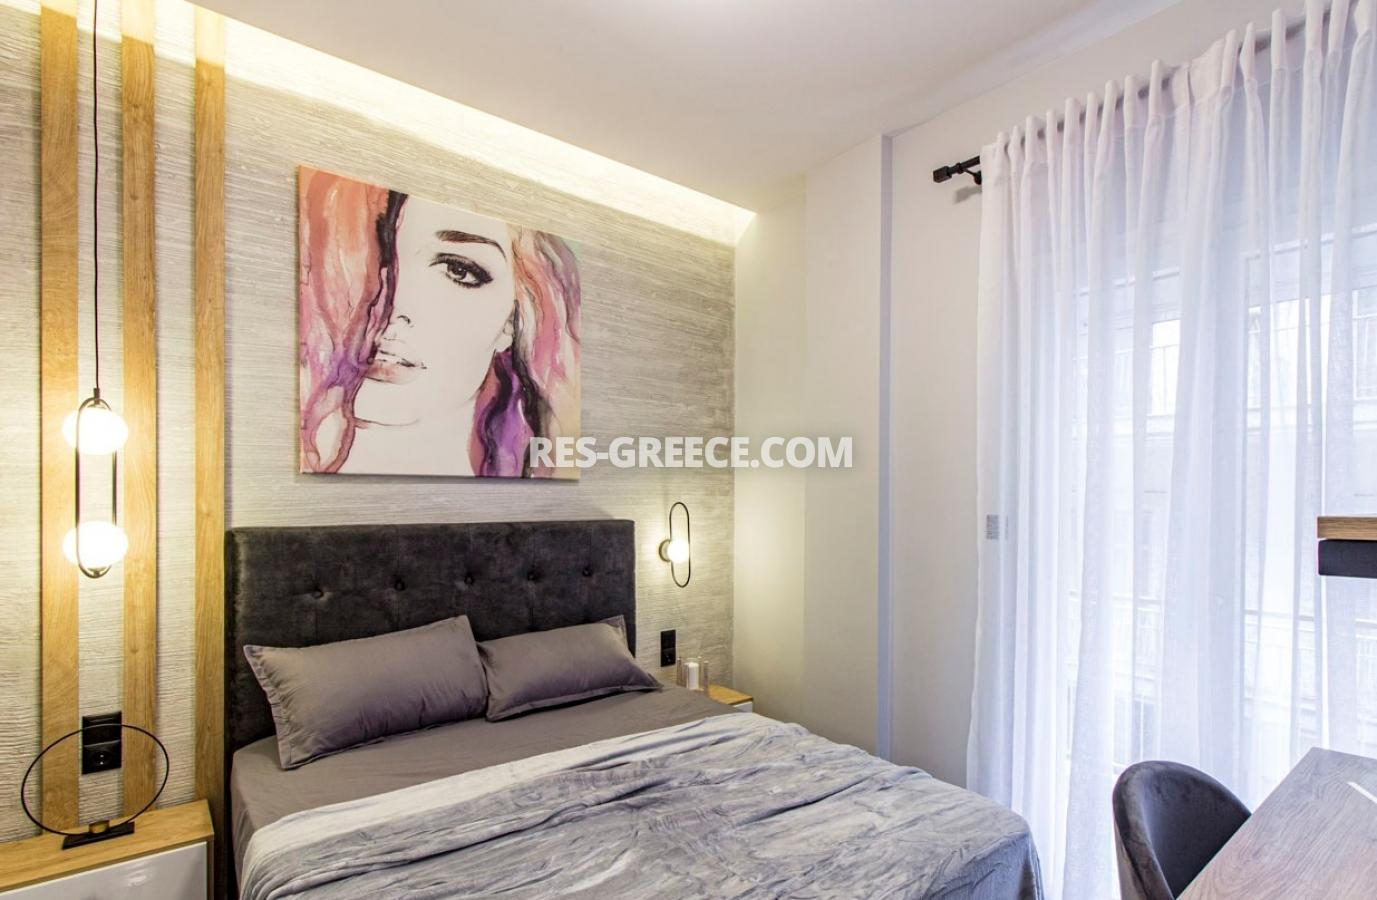 ?.Foka B, Central Macedonia, Greece - apartments in Thessaloniki center for long-term or short-term rent - Photo 5